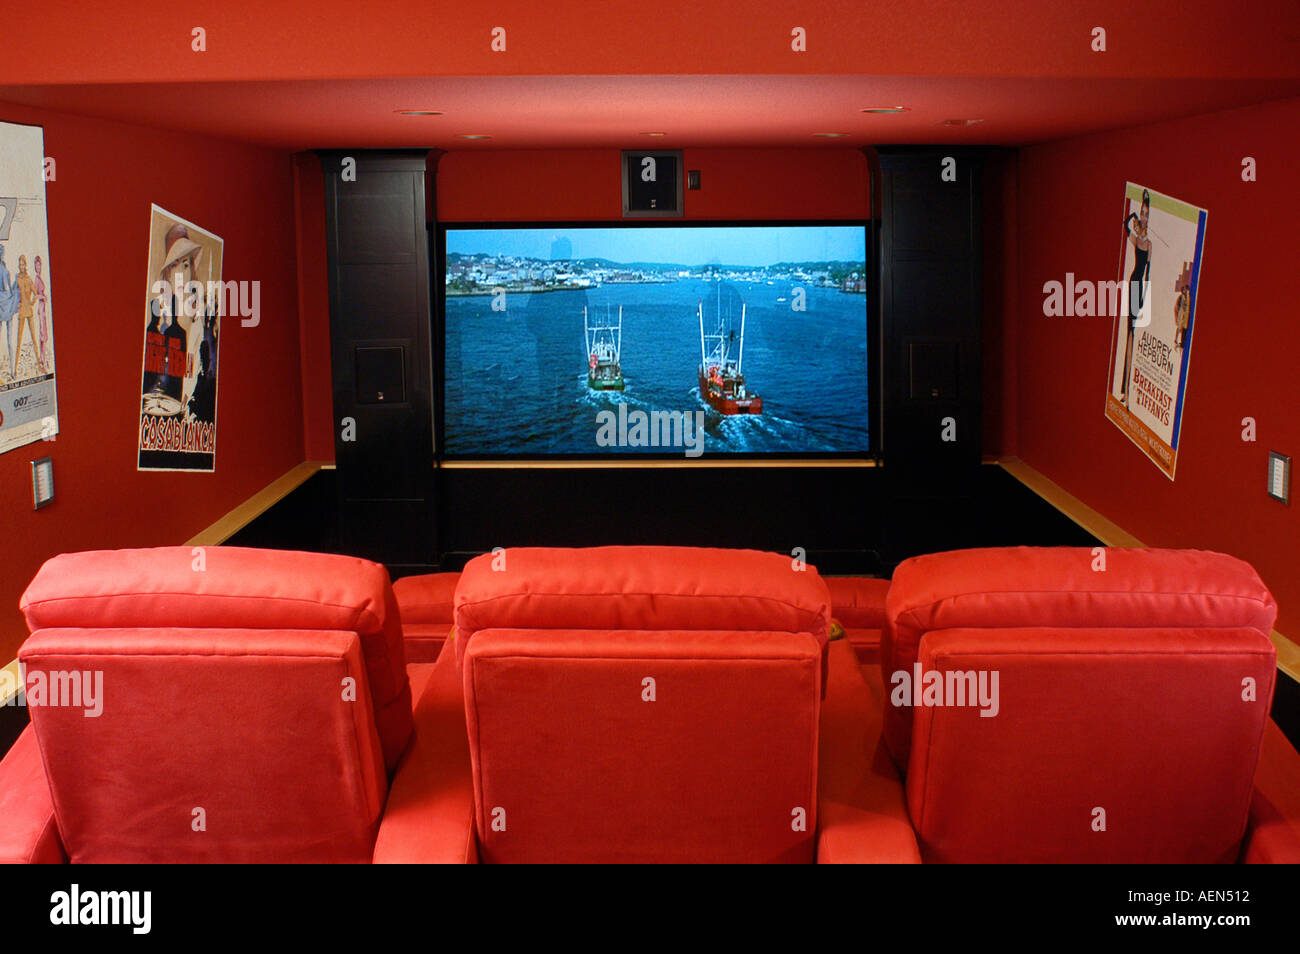 Luxury Home Movie Theater And Screen Red Recliner Chairs.   Stock Image